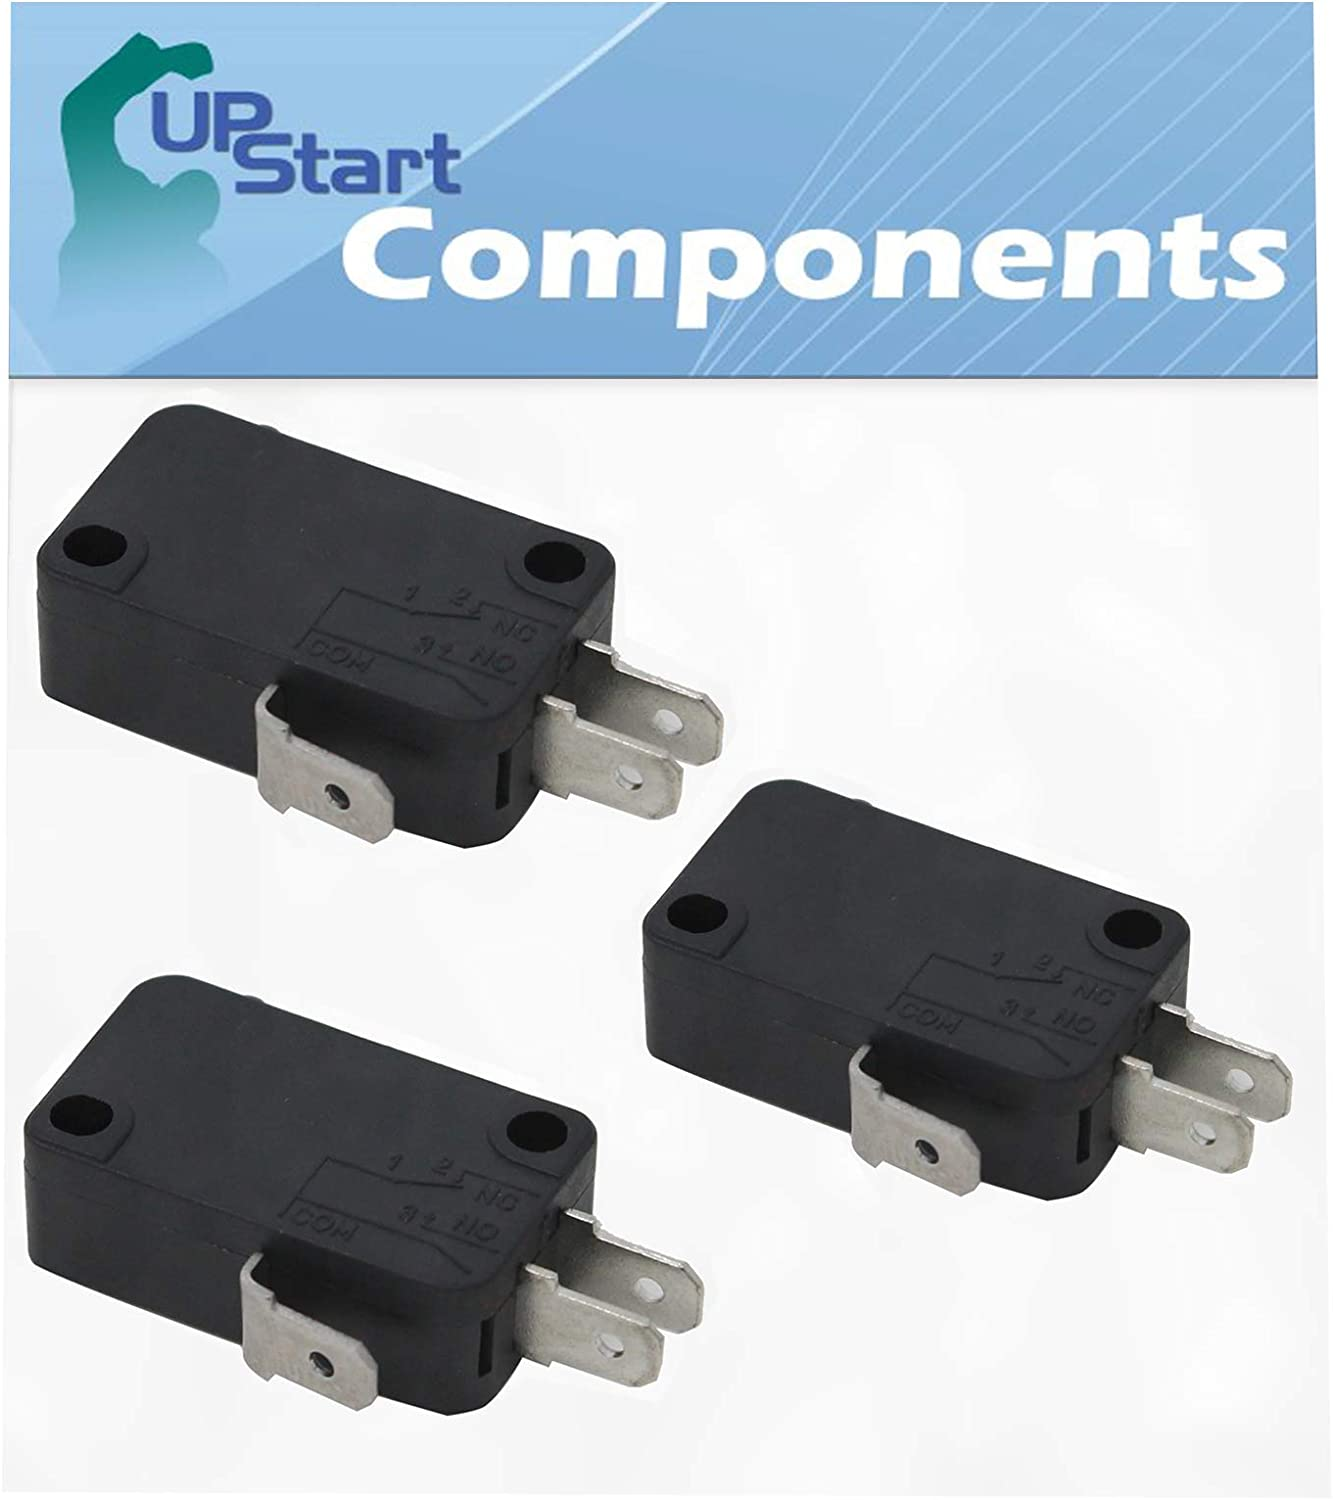 3-Pack W10269458 Microwave Door Switch Replacement for Maytag MMV4205DS2 - Compatible with W10269458 Door Switch